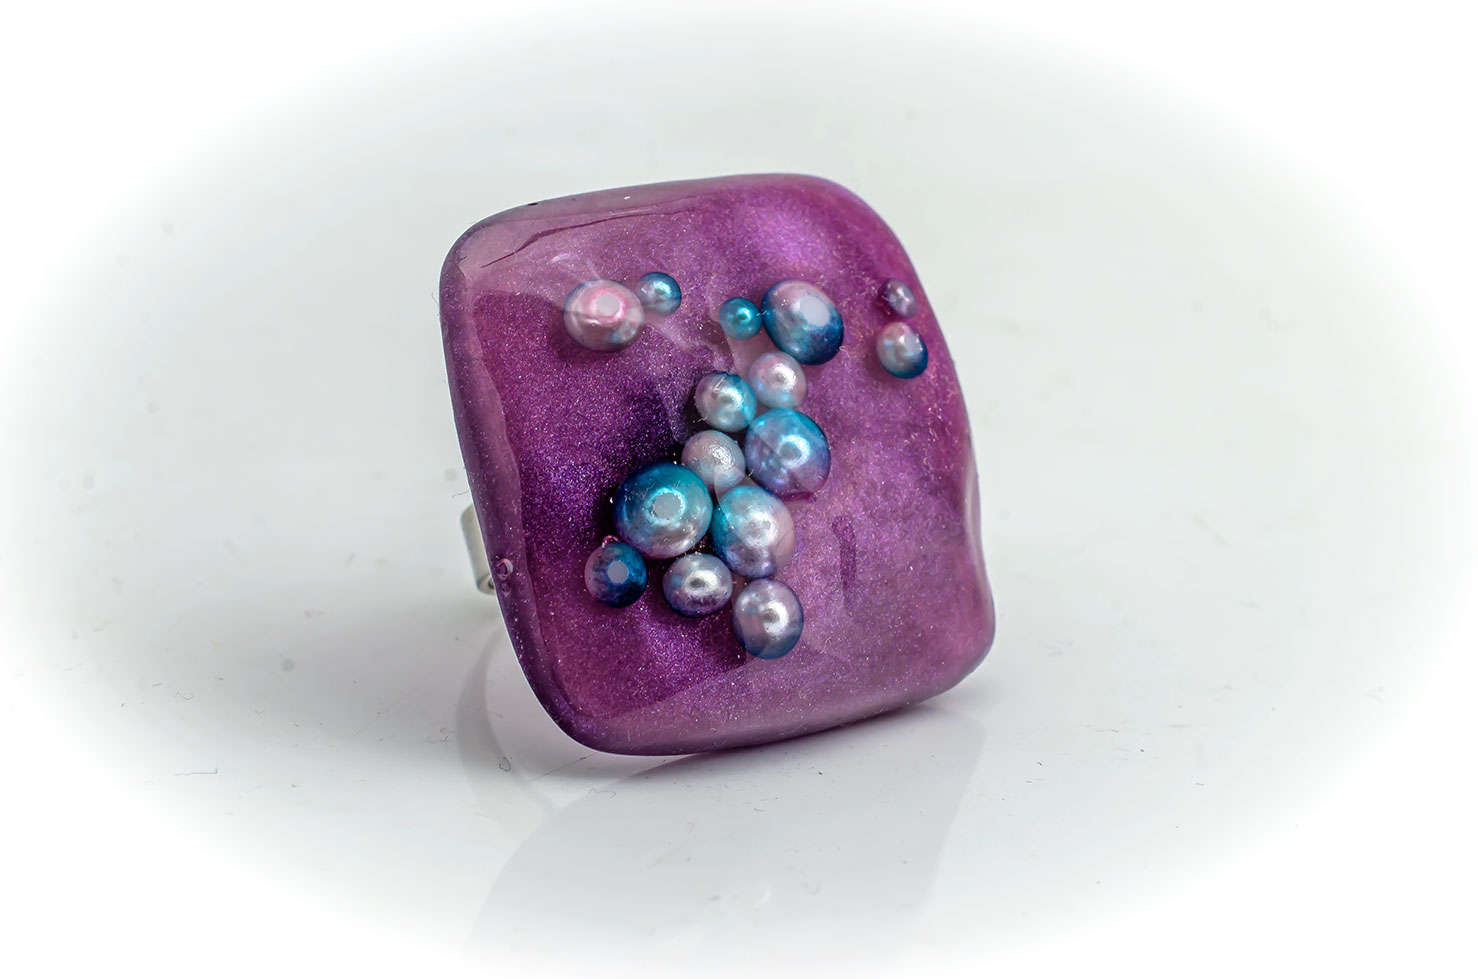 Rings Resin by PAGANE uniques Design (22